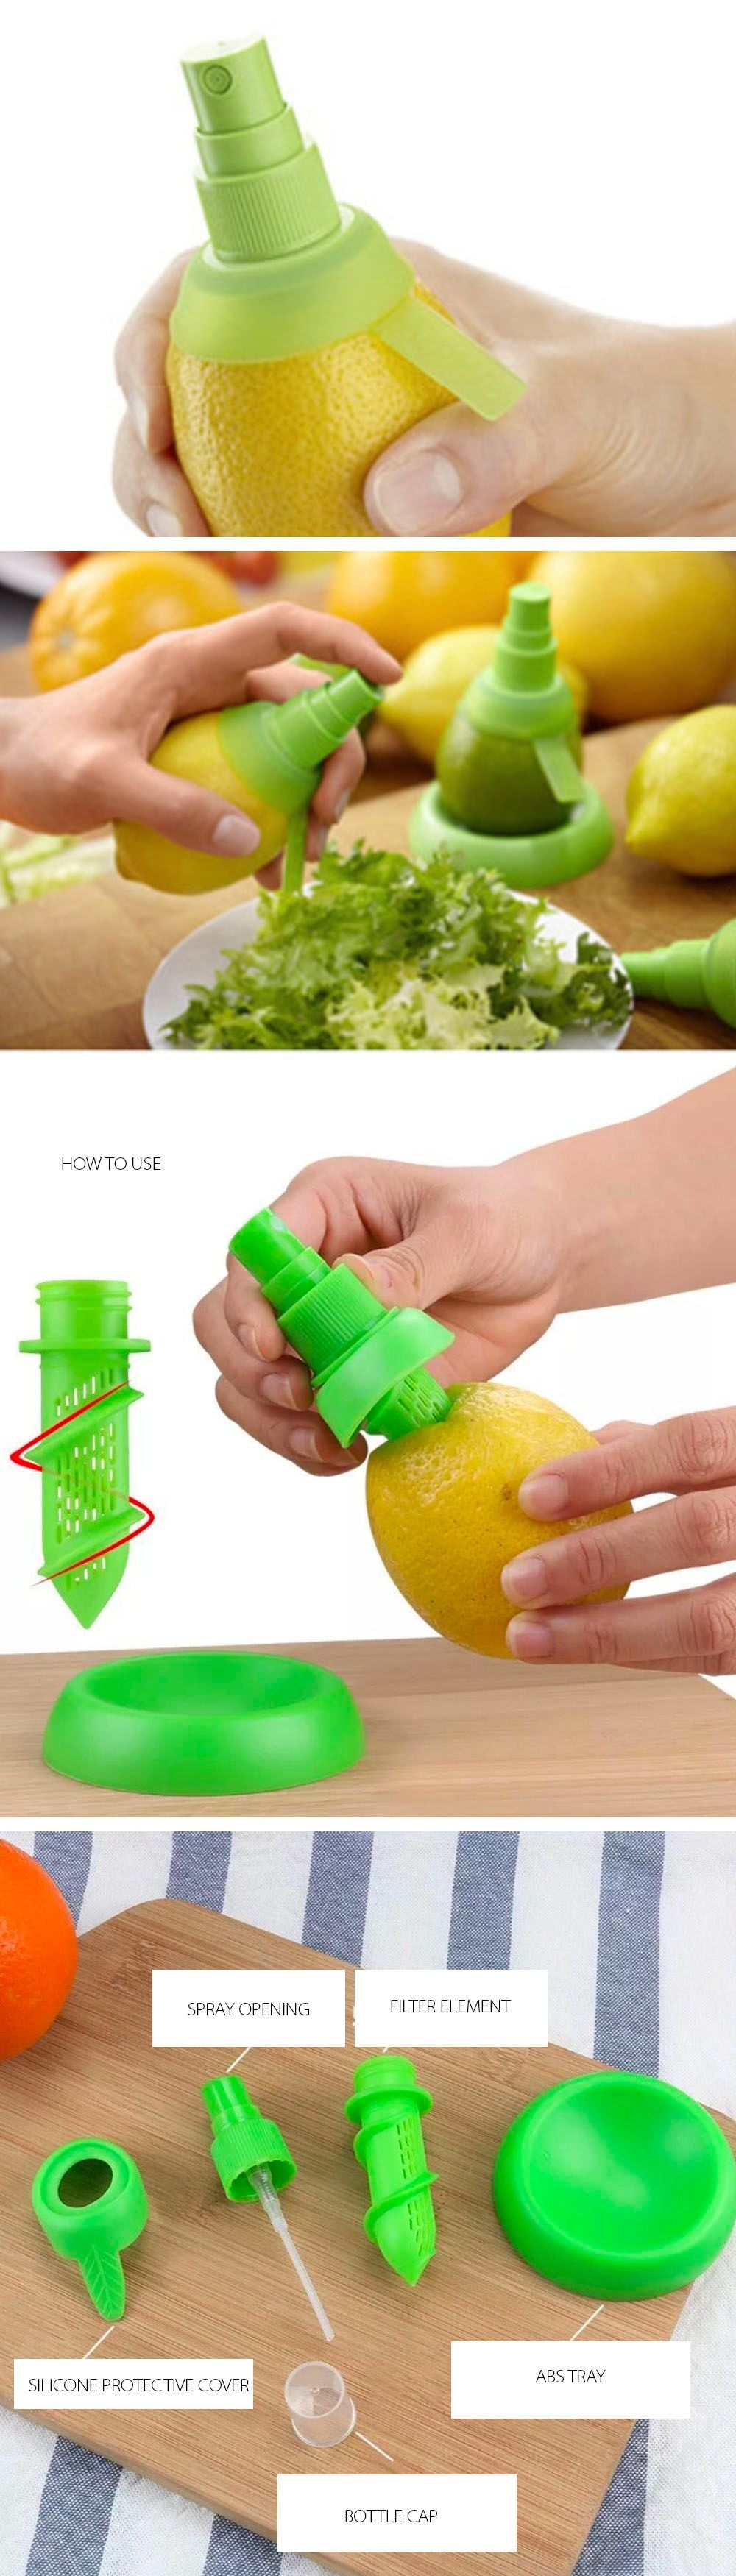 Lemon Spayer Easy To Use